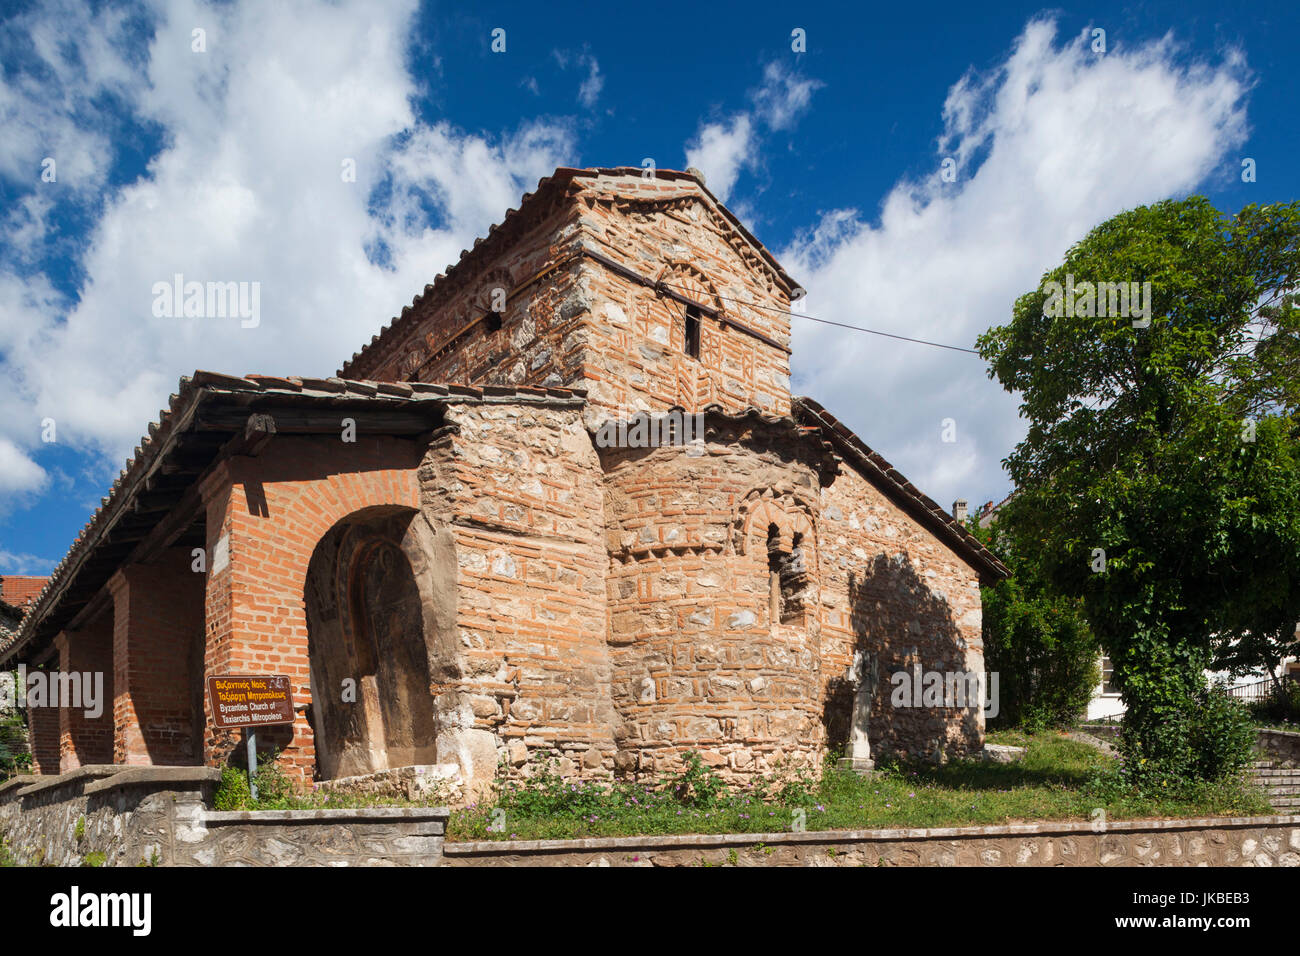 Greece, West Macedonia Region, Kastoria, Taxiarches Mitropoleos church, built in 9th century AD, exterior - Stock Image